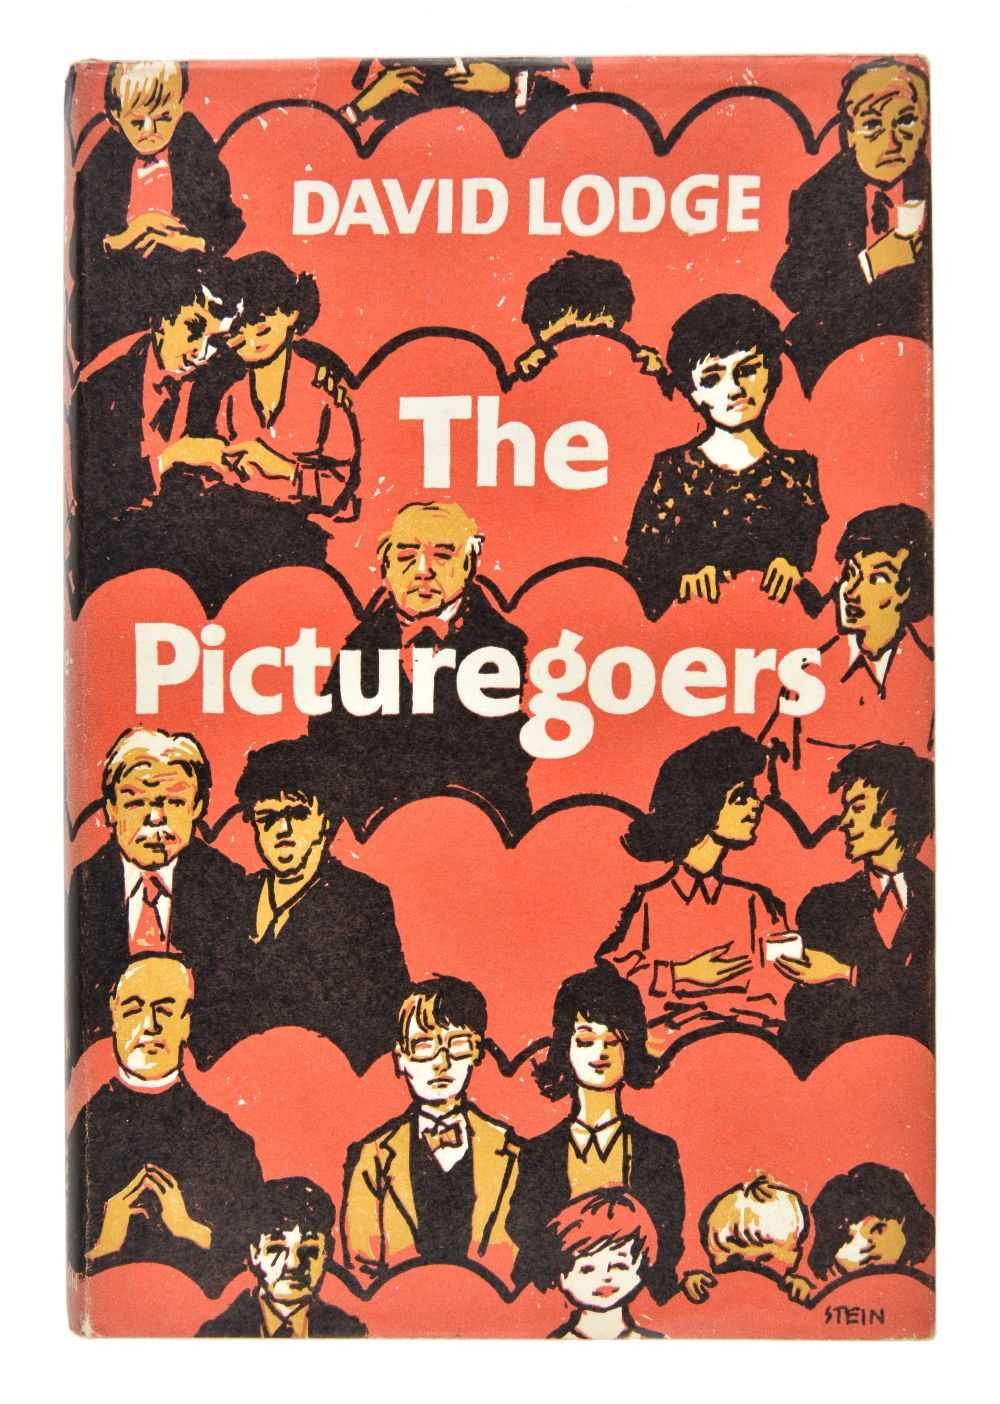 Lot 725-Lodge (David). The Picturegoers, 1st edition, 1960